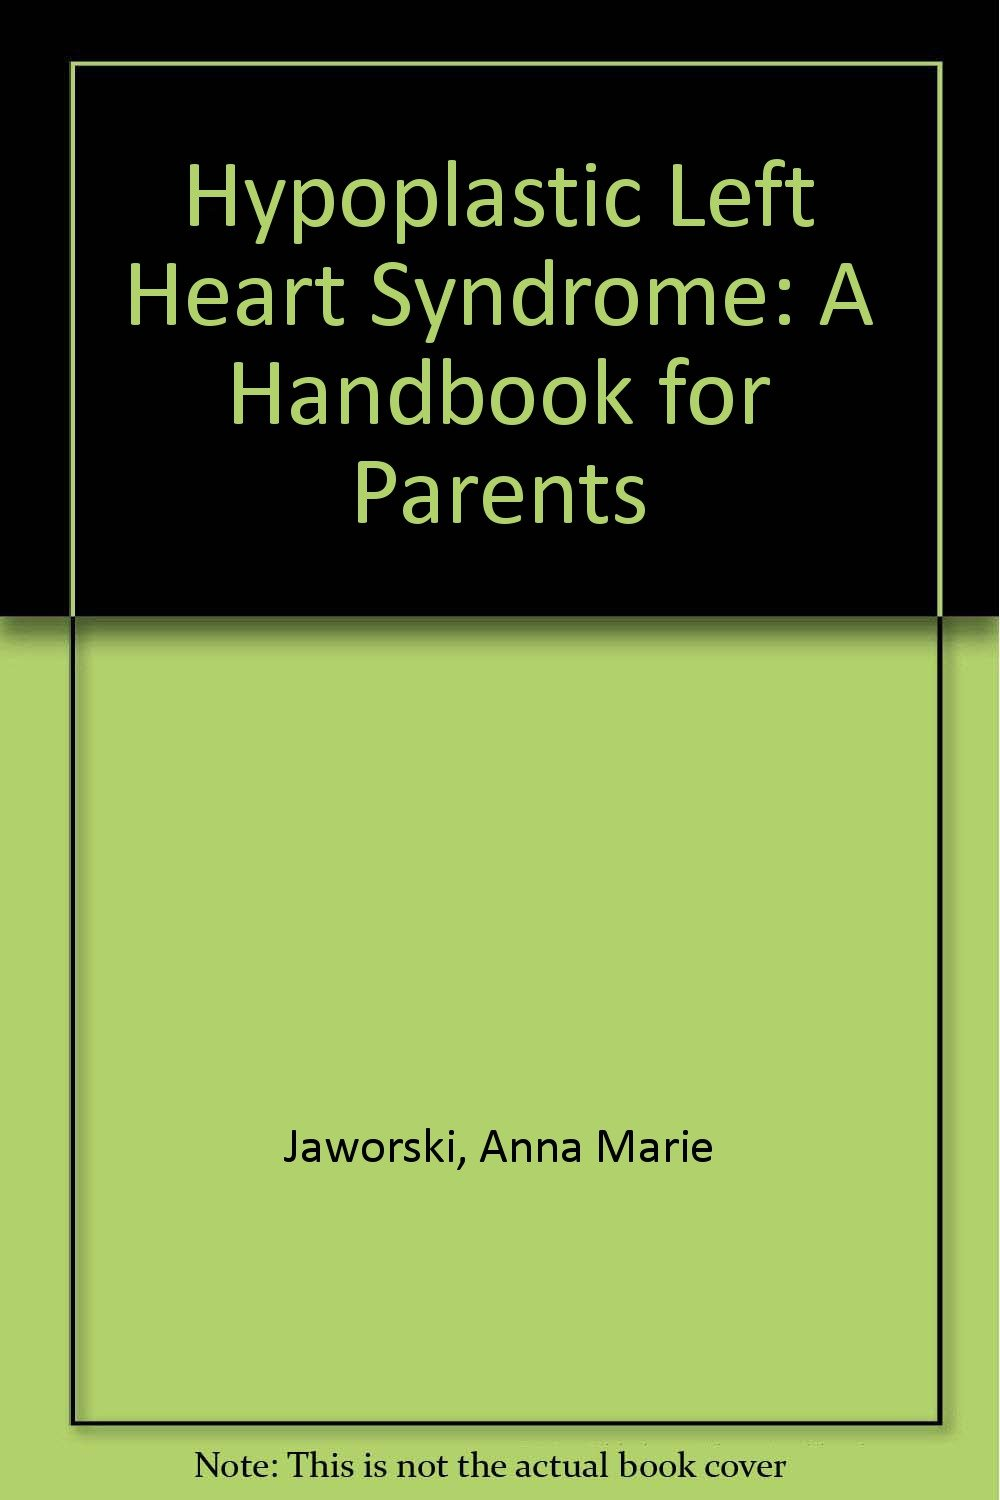 Download Hypoplastic Left Heart Syndrome: A Handbook For Parents 